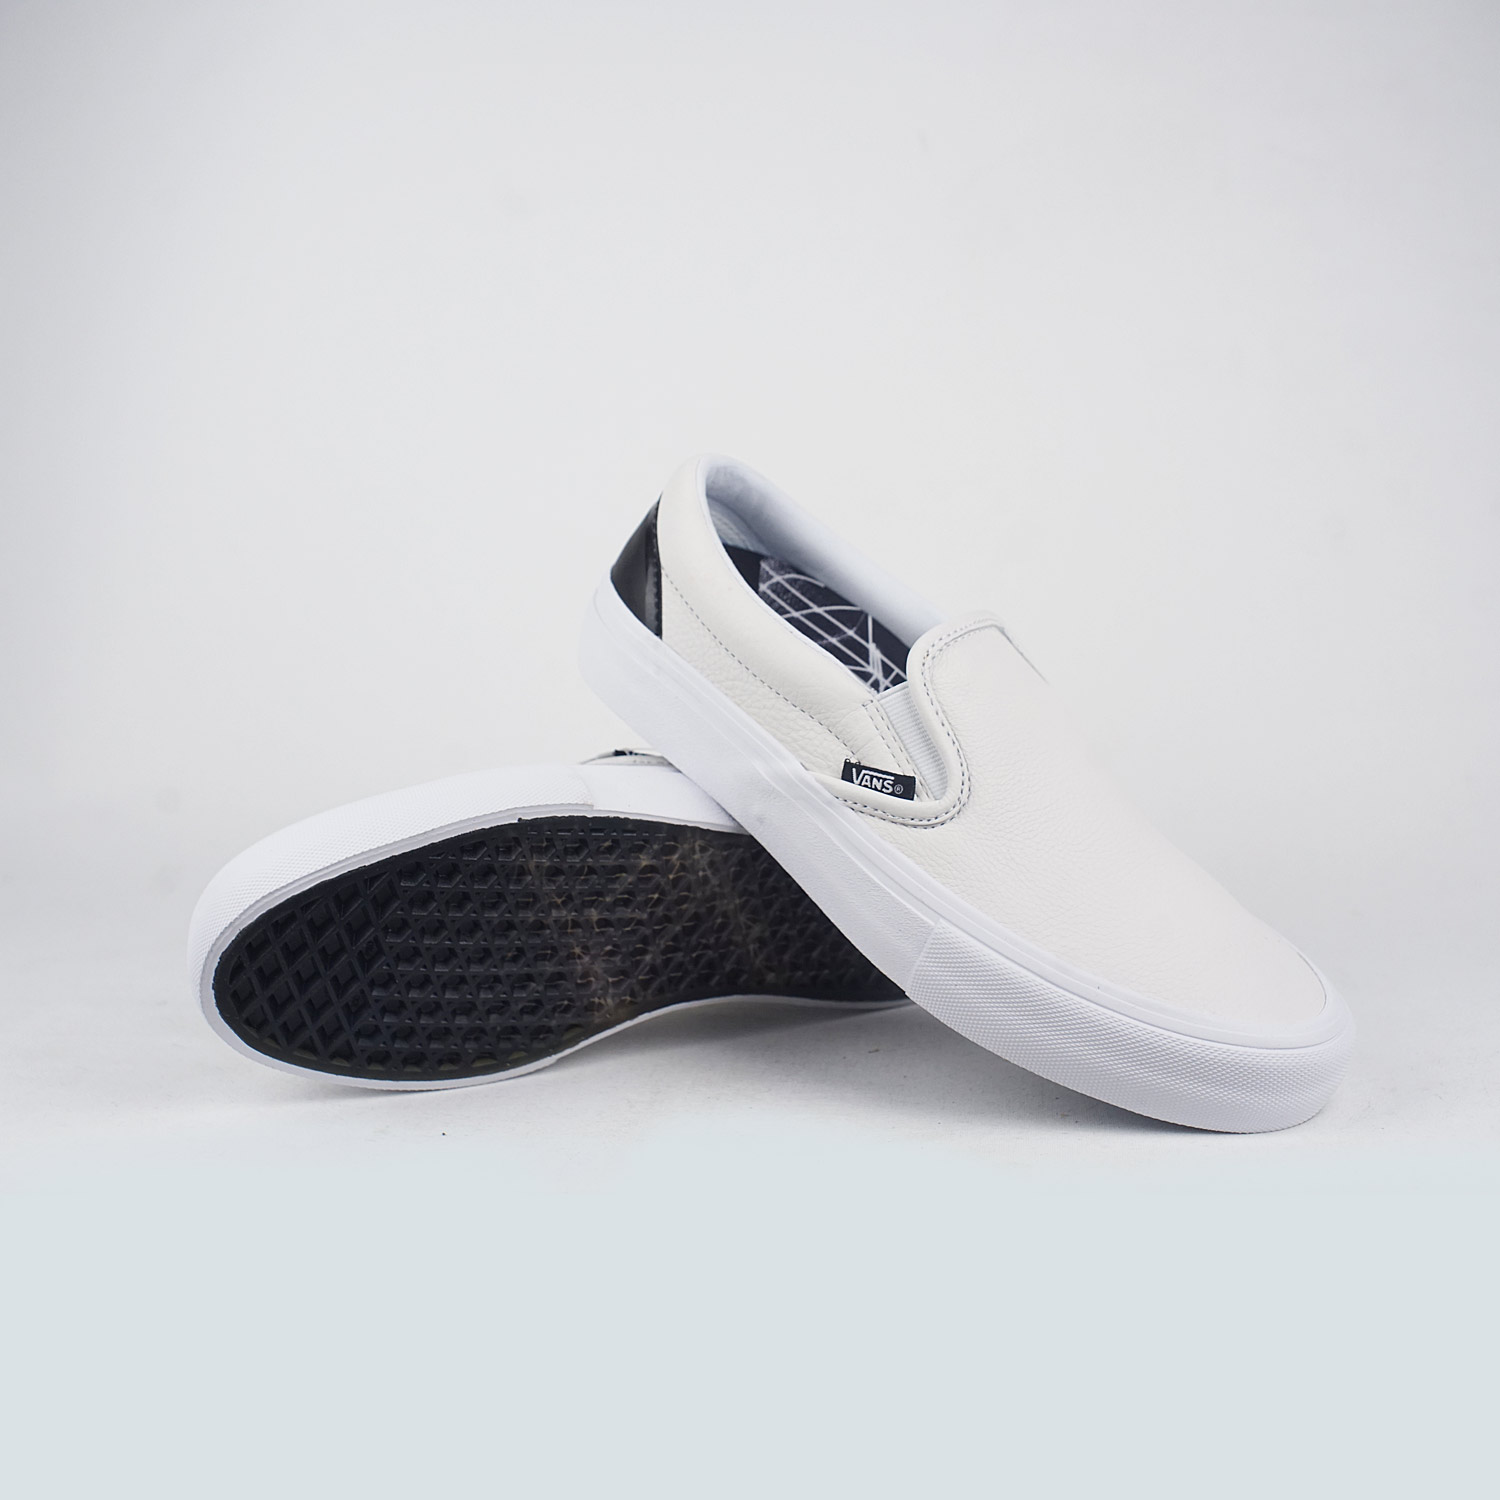 00d0fc9acee43b Vans X Öctagon Slip – On Pro True White Black – LOBBY